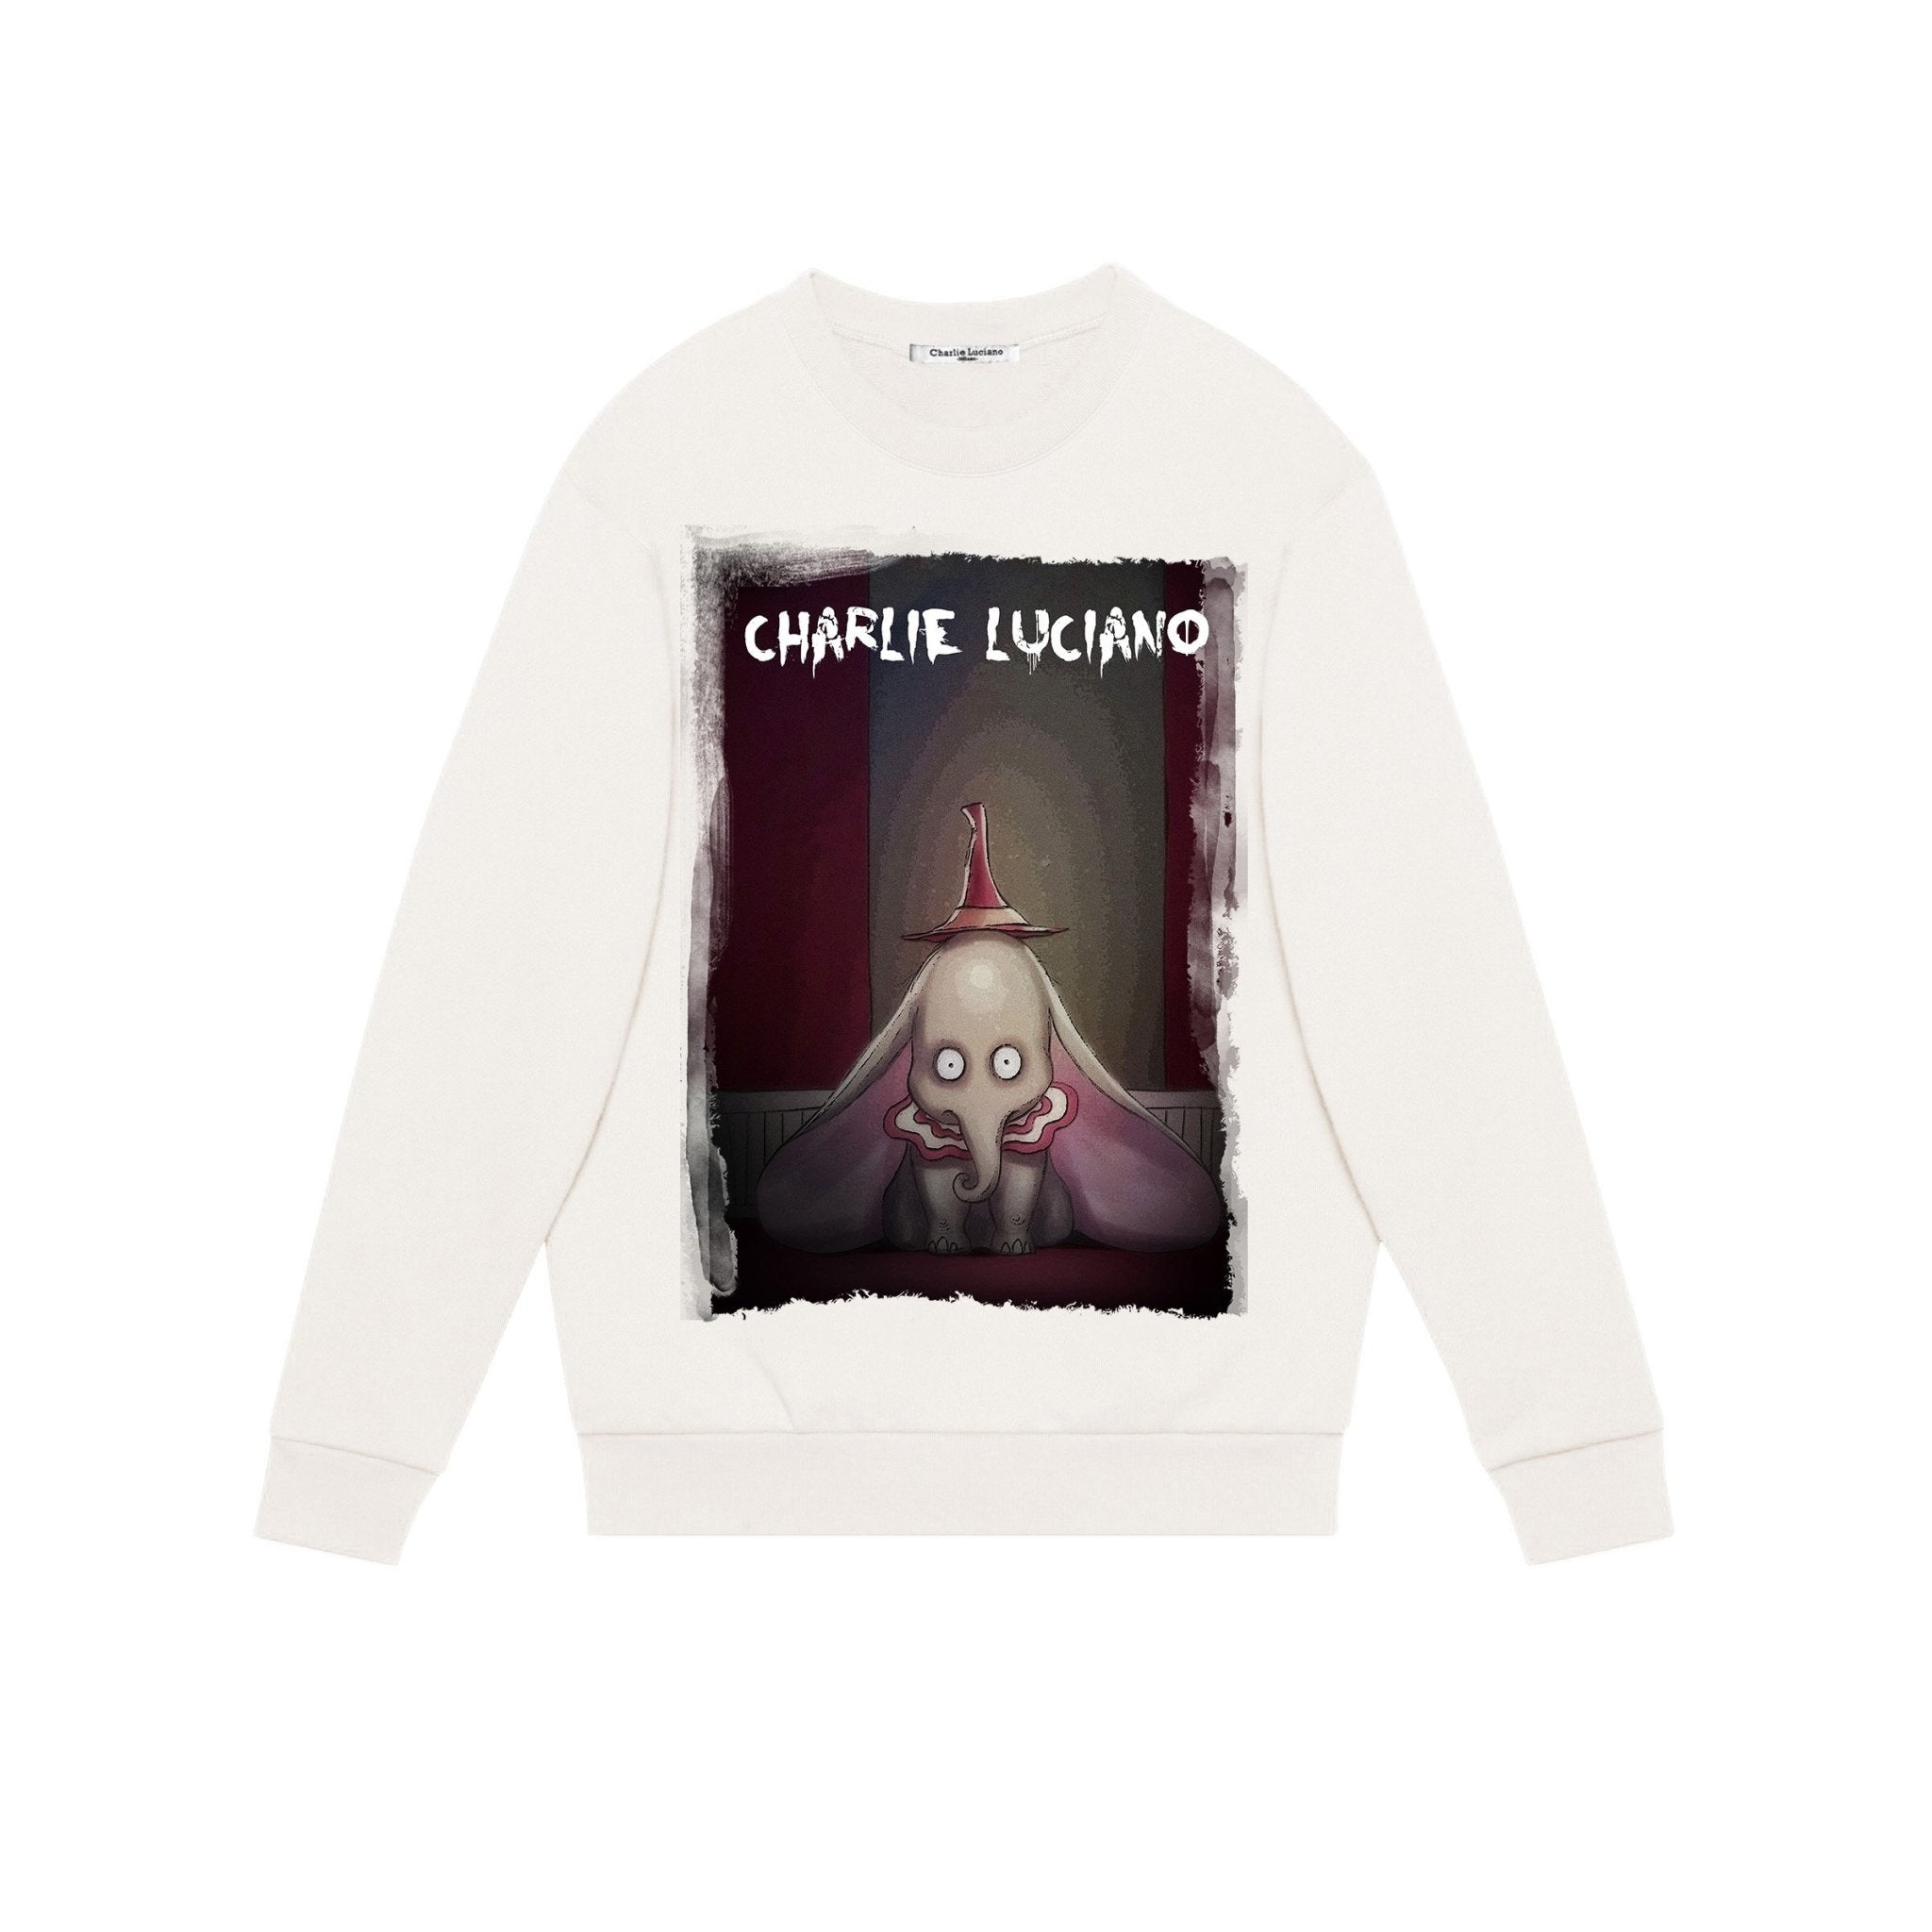 CHARLIE LUCIANO 'Dumbo' Sweatershirt | MADA IN CHINA